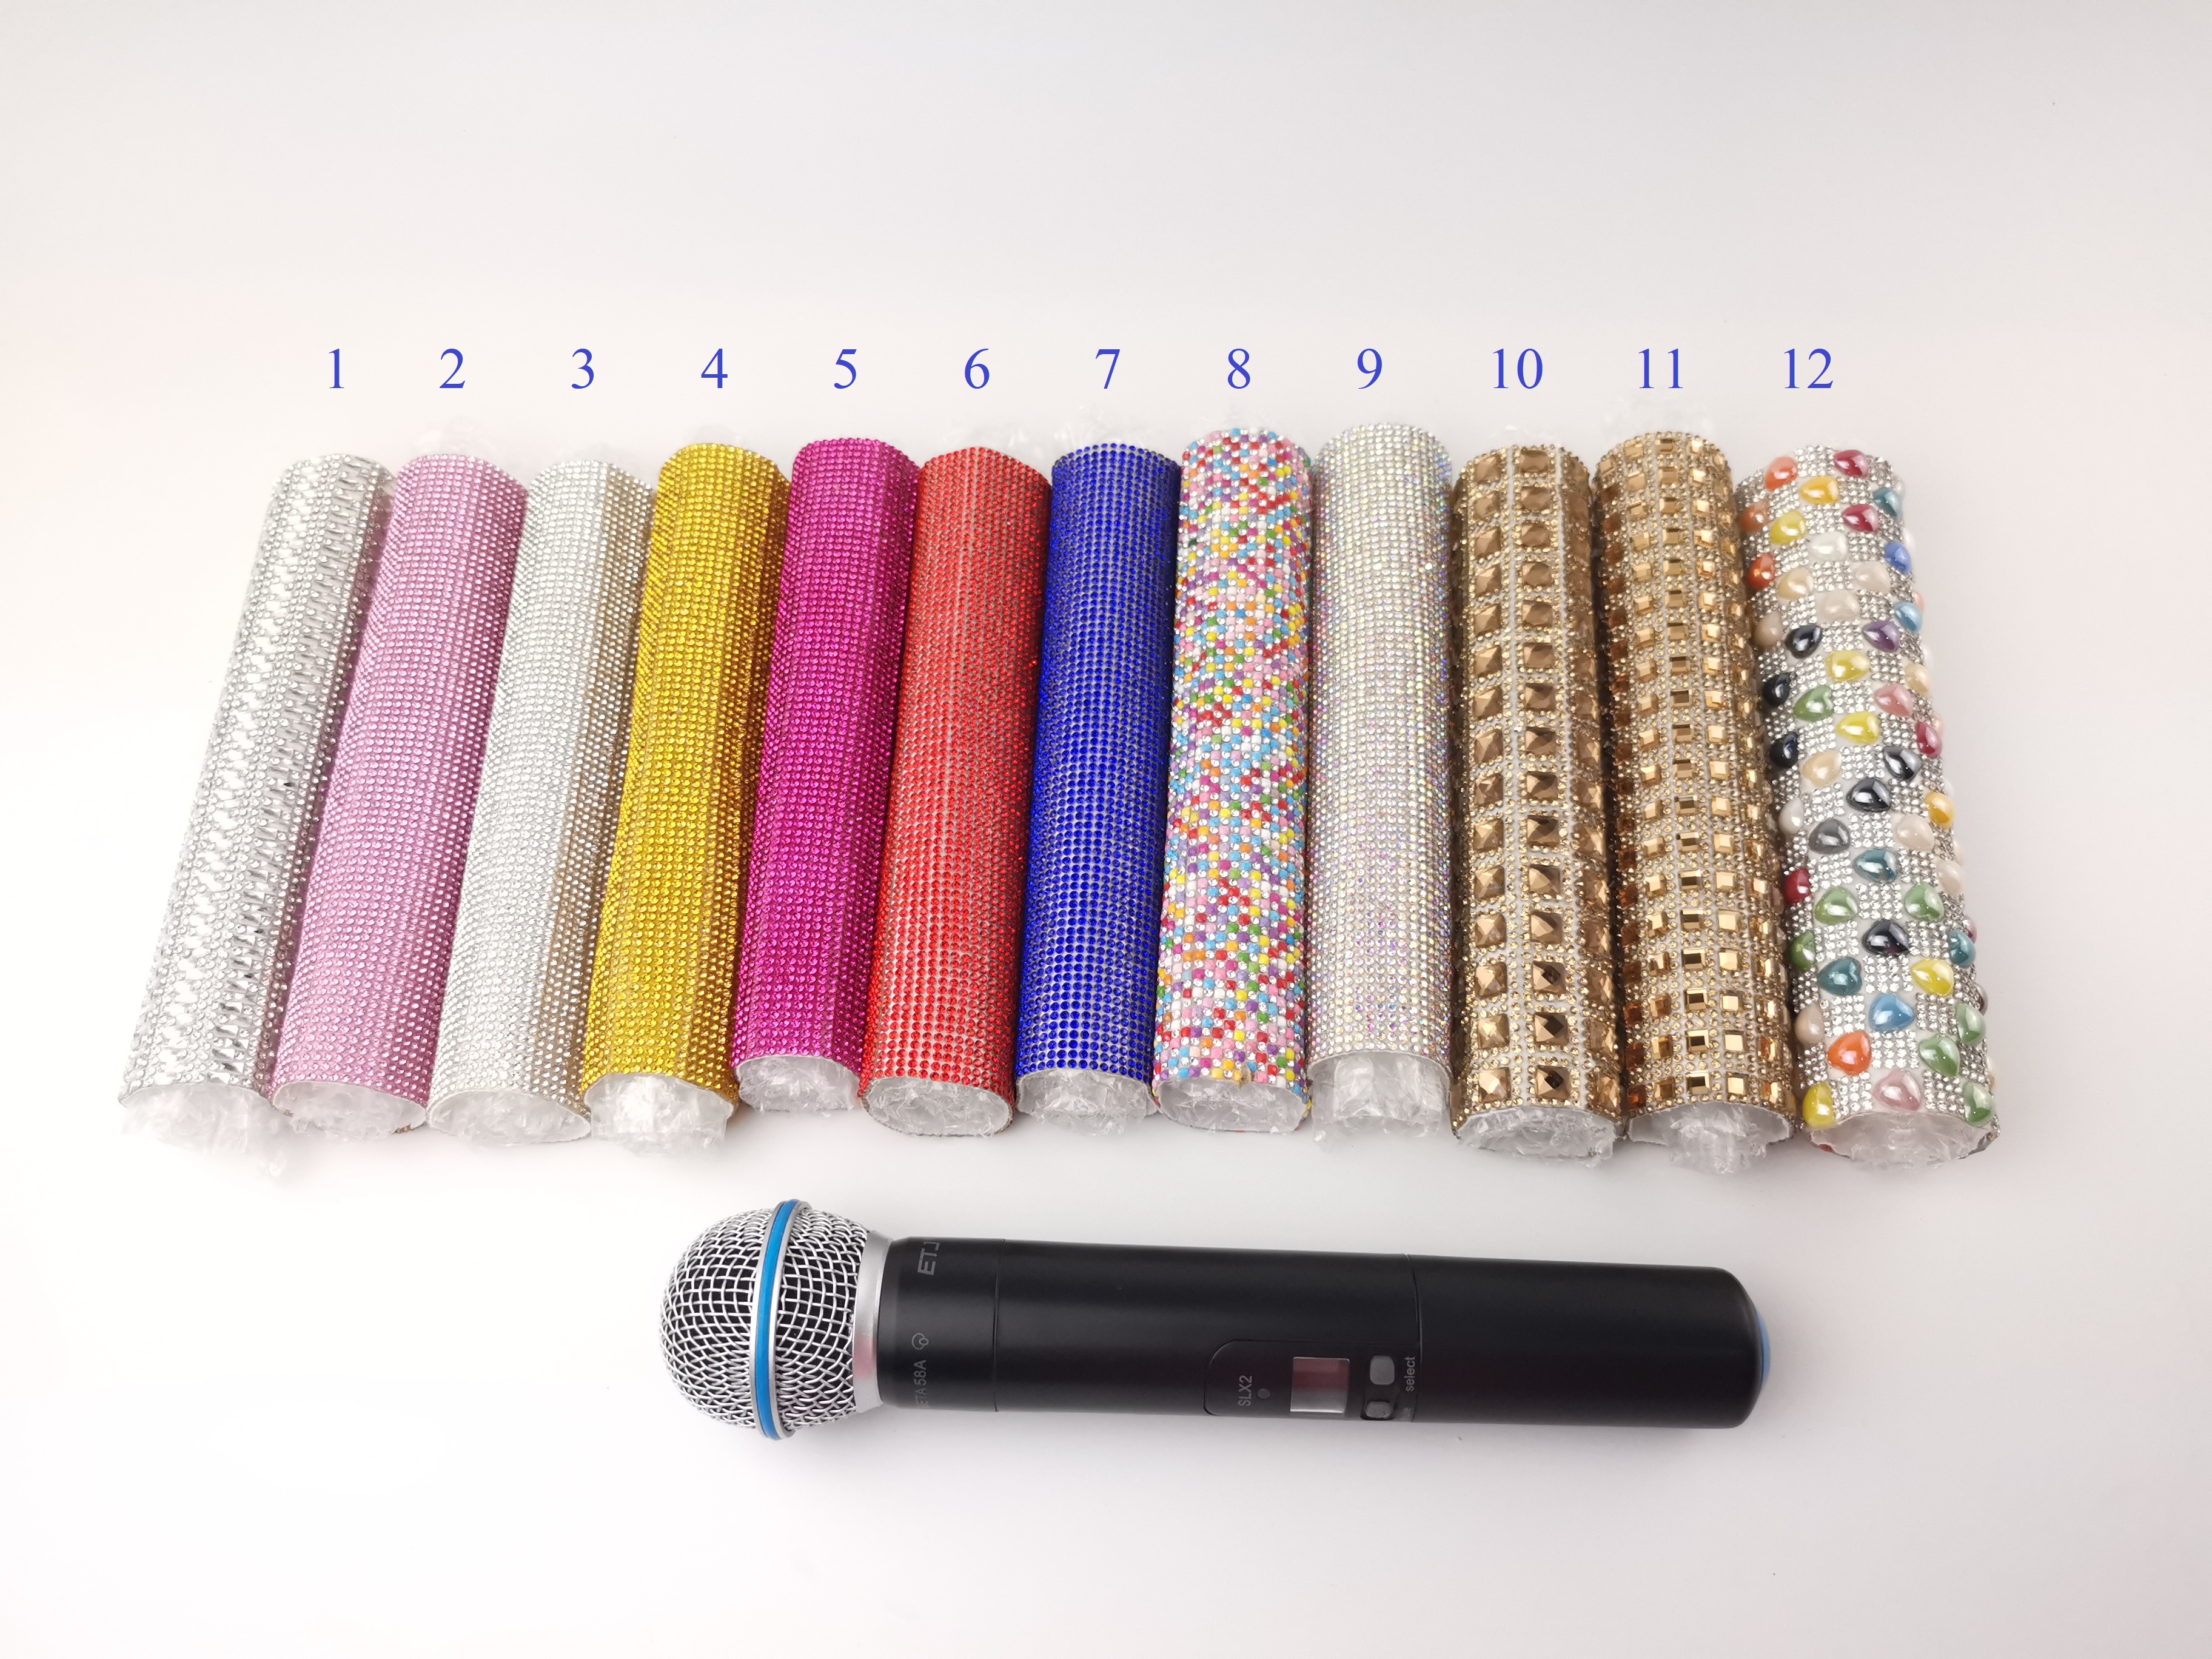 Bling Bling Sleeve Cover Microphone Crystal Skin Handheld Shell Flash Frame Colorful For Shows Stage